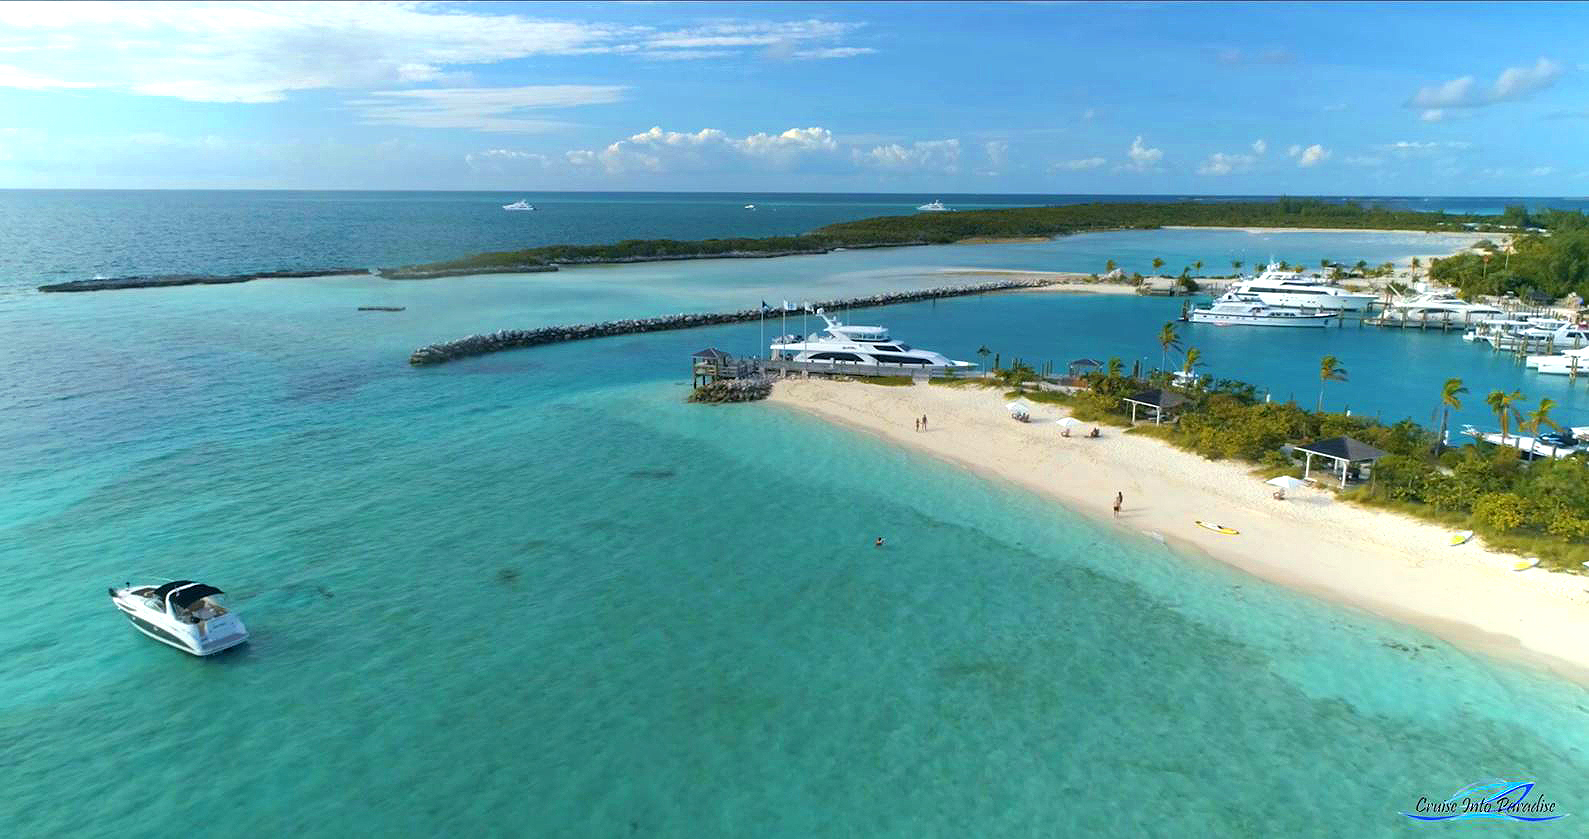 Private Charter from Nassau to Exuma